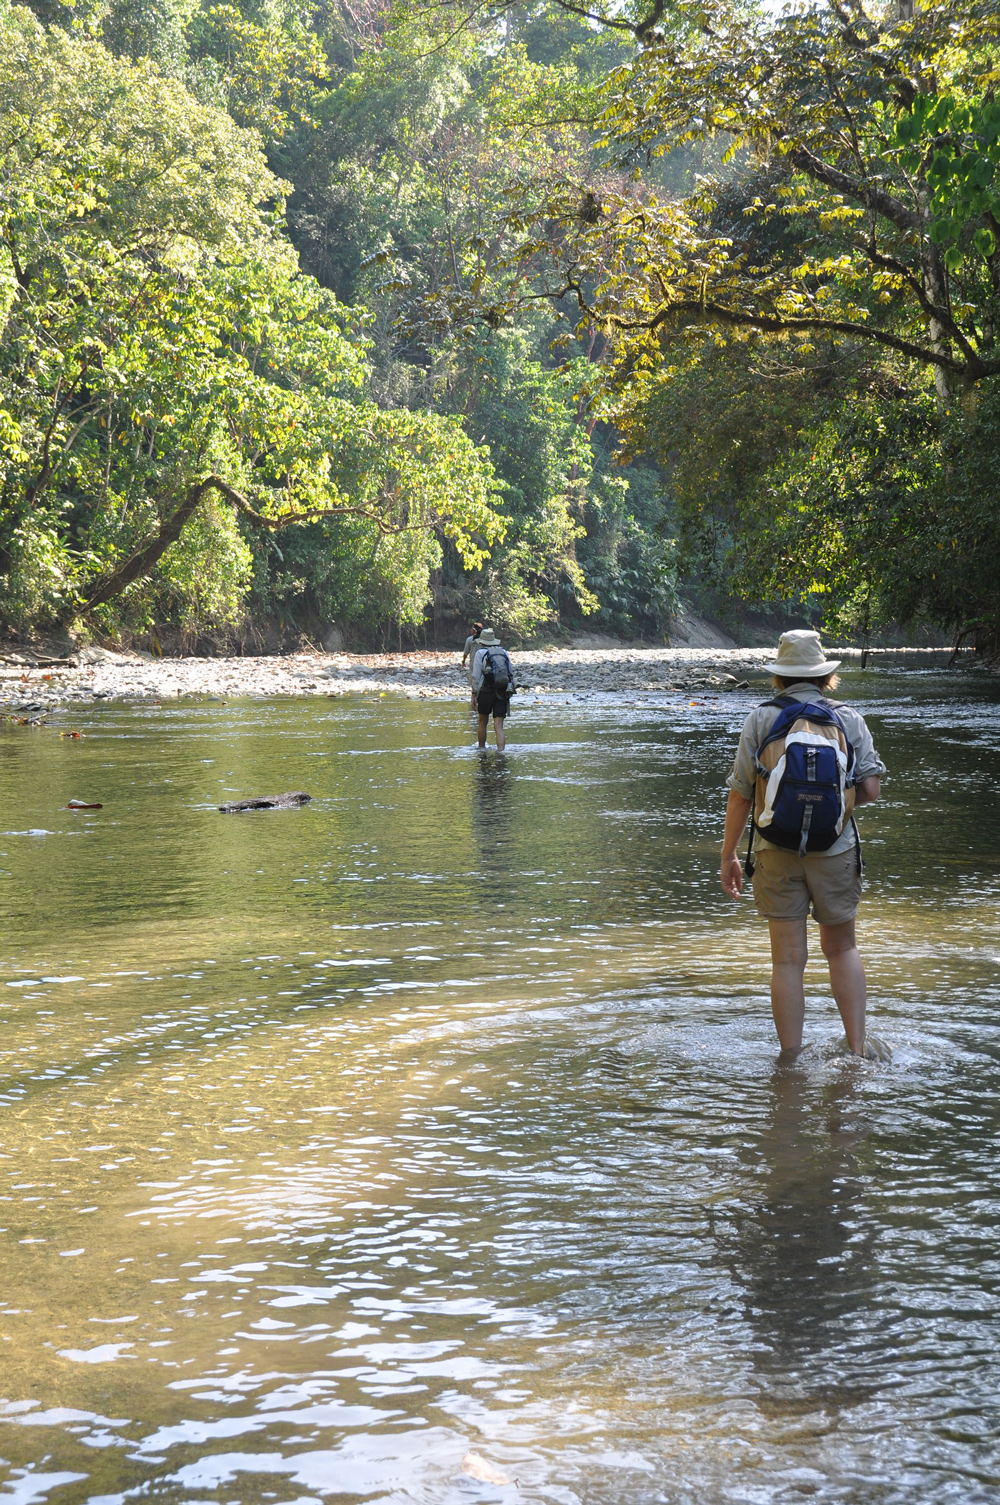 Wading through a river Travel With Ann Experiential Adventures